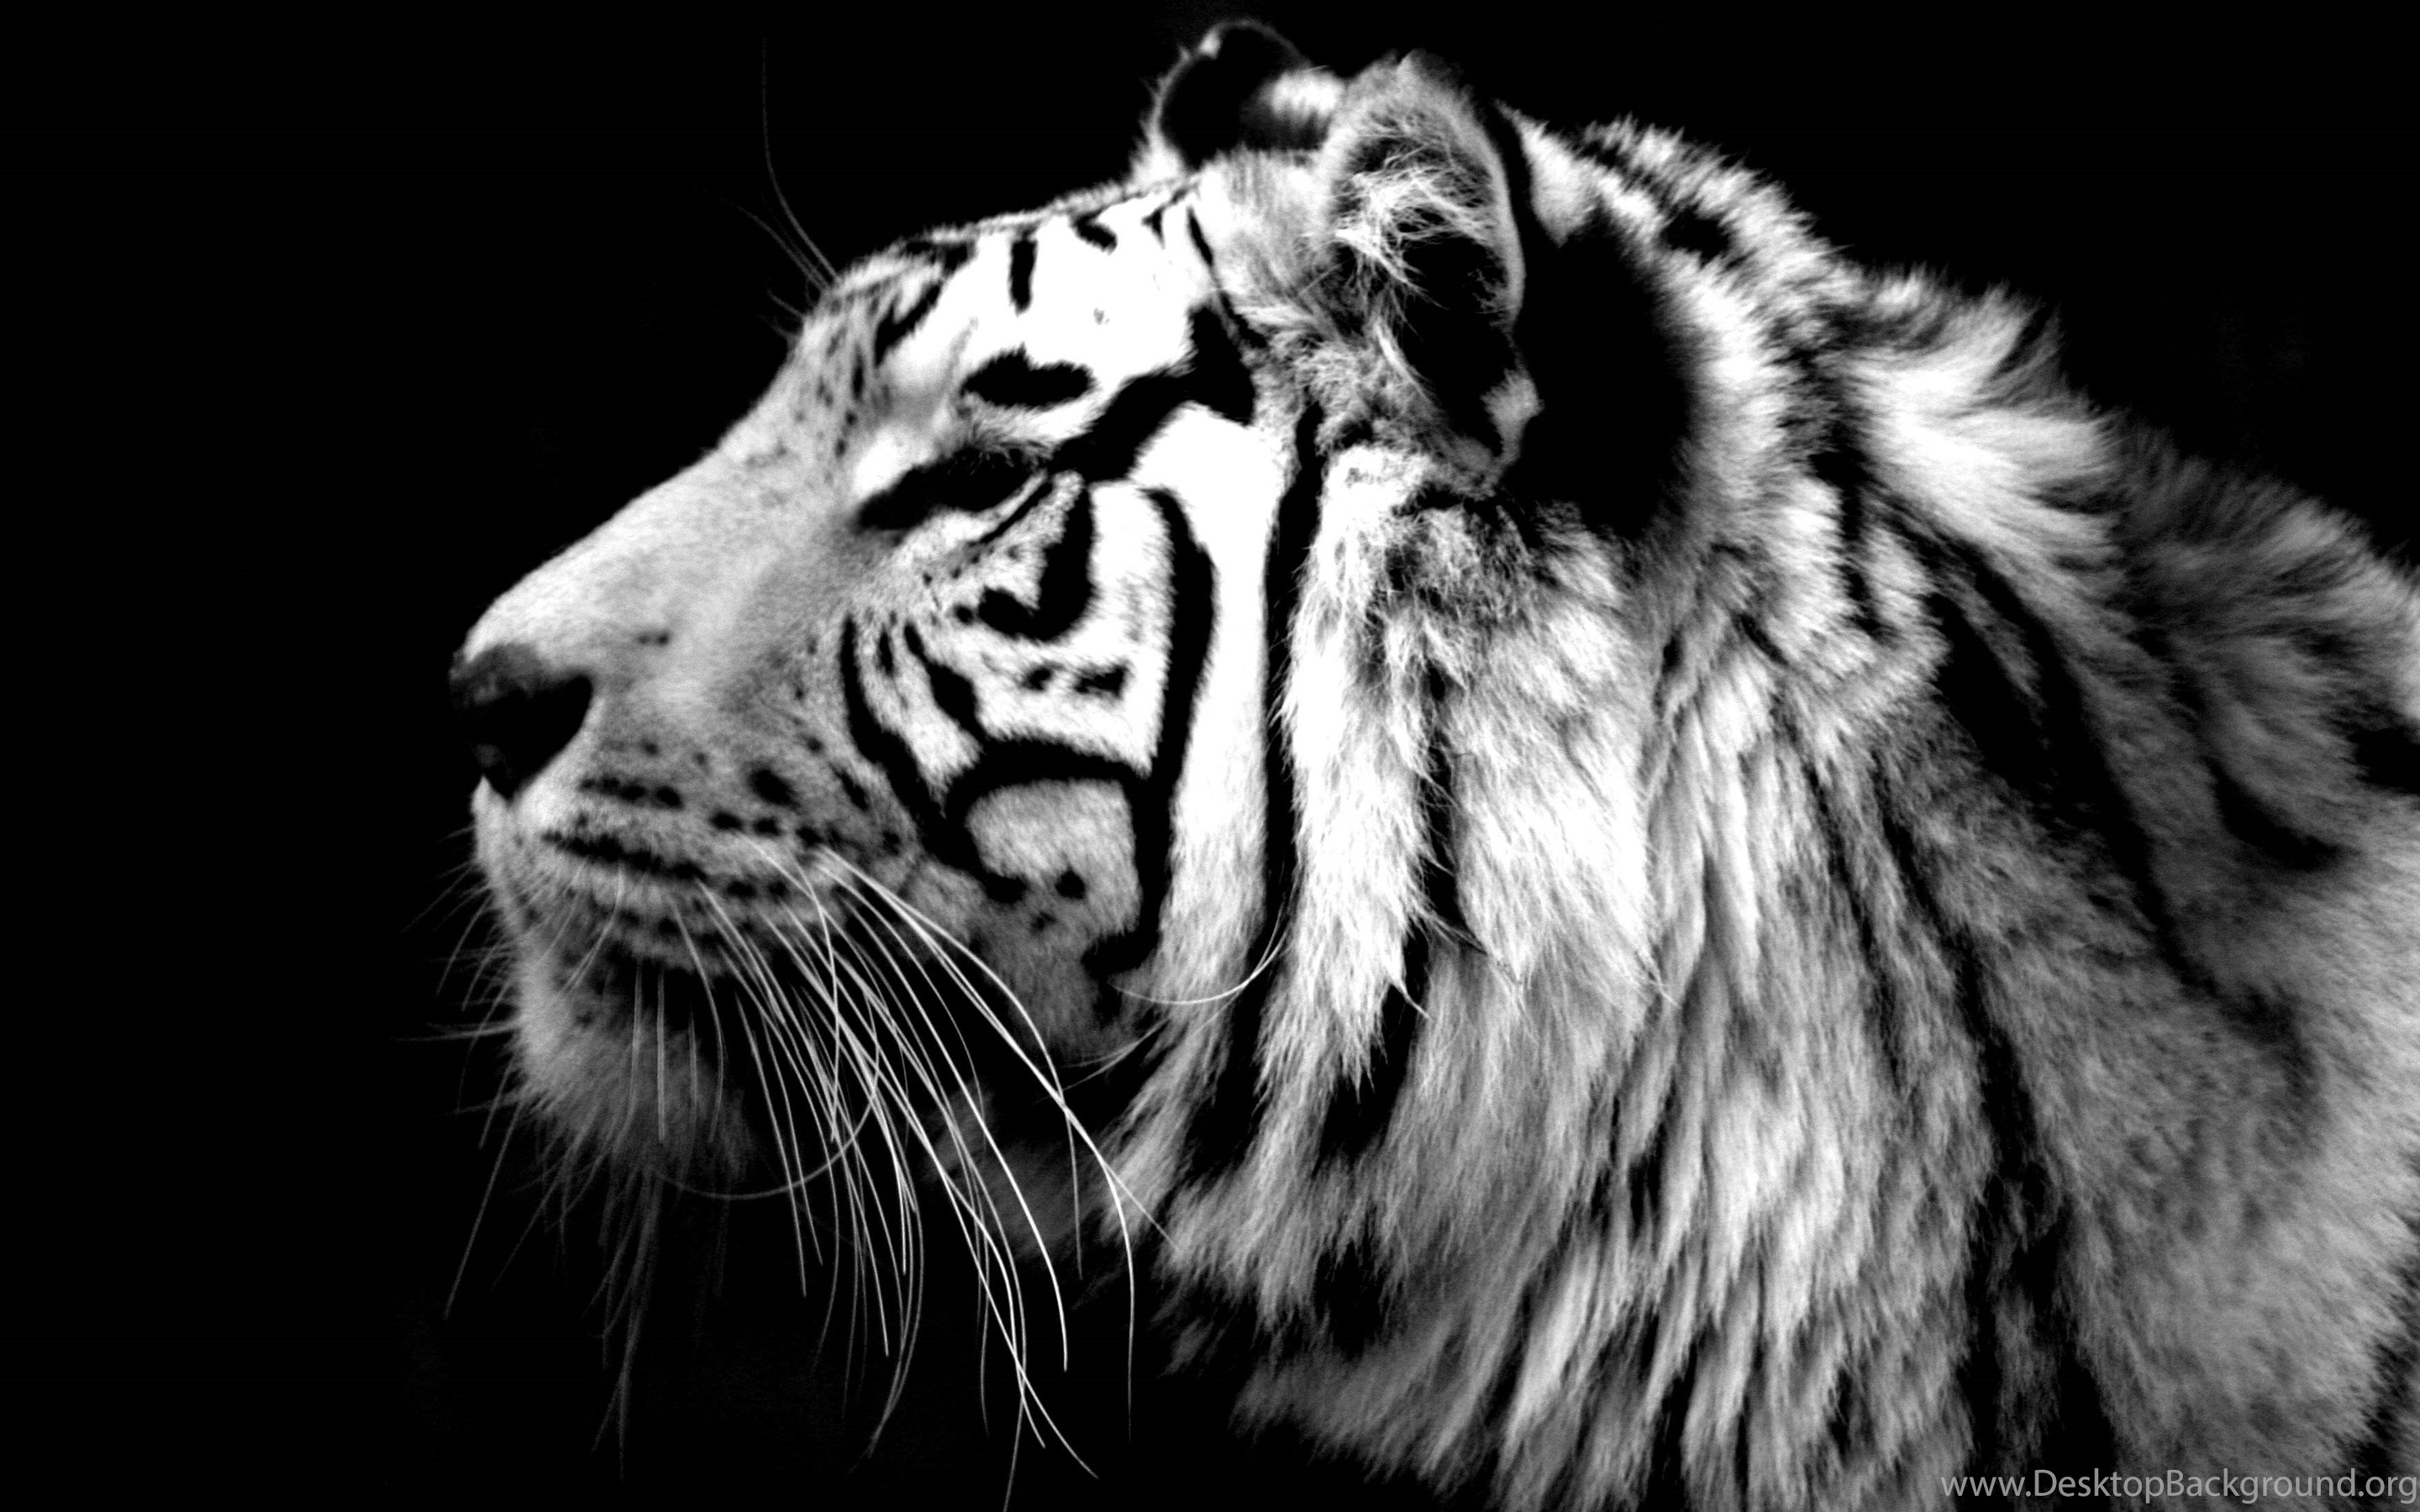 black and white tiger wallpapers hd resolution : animal wallpapers